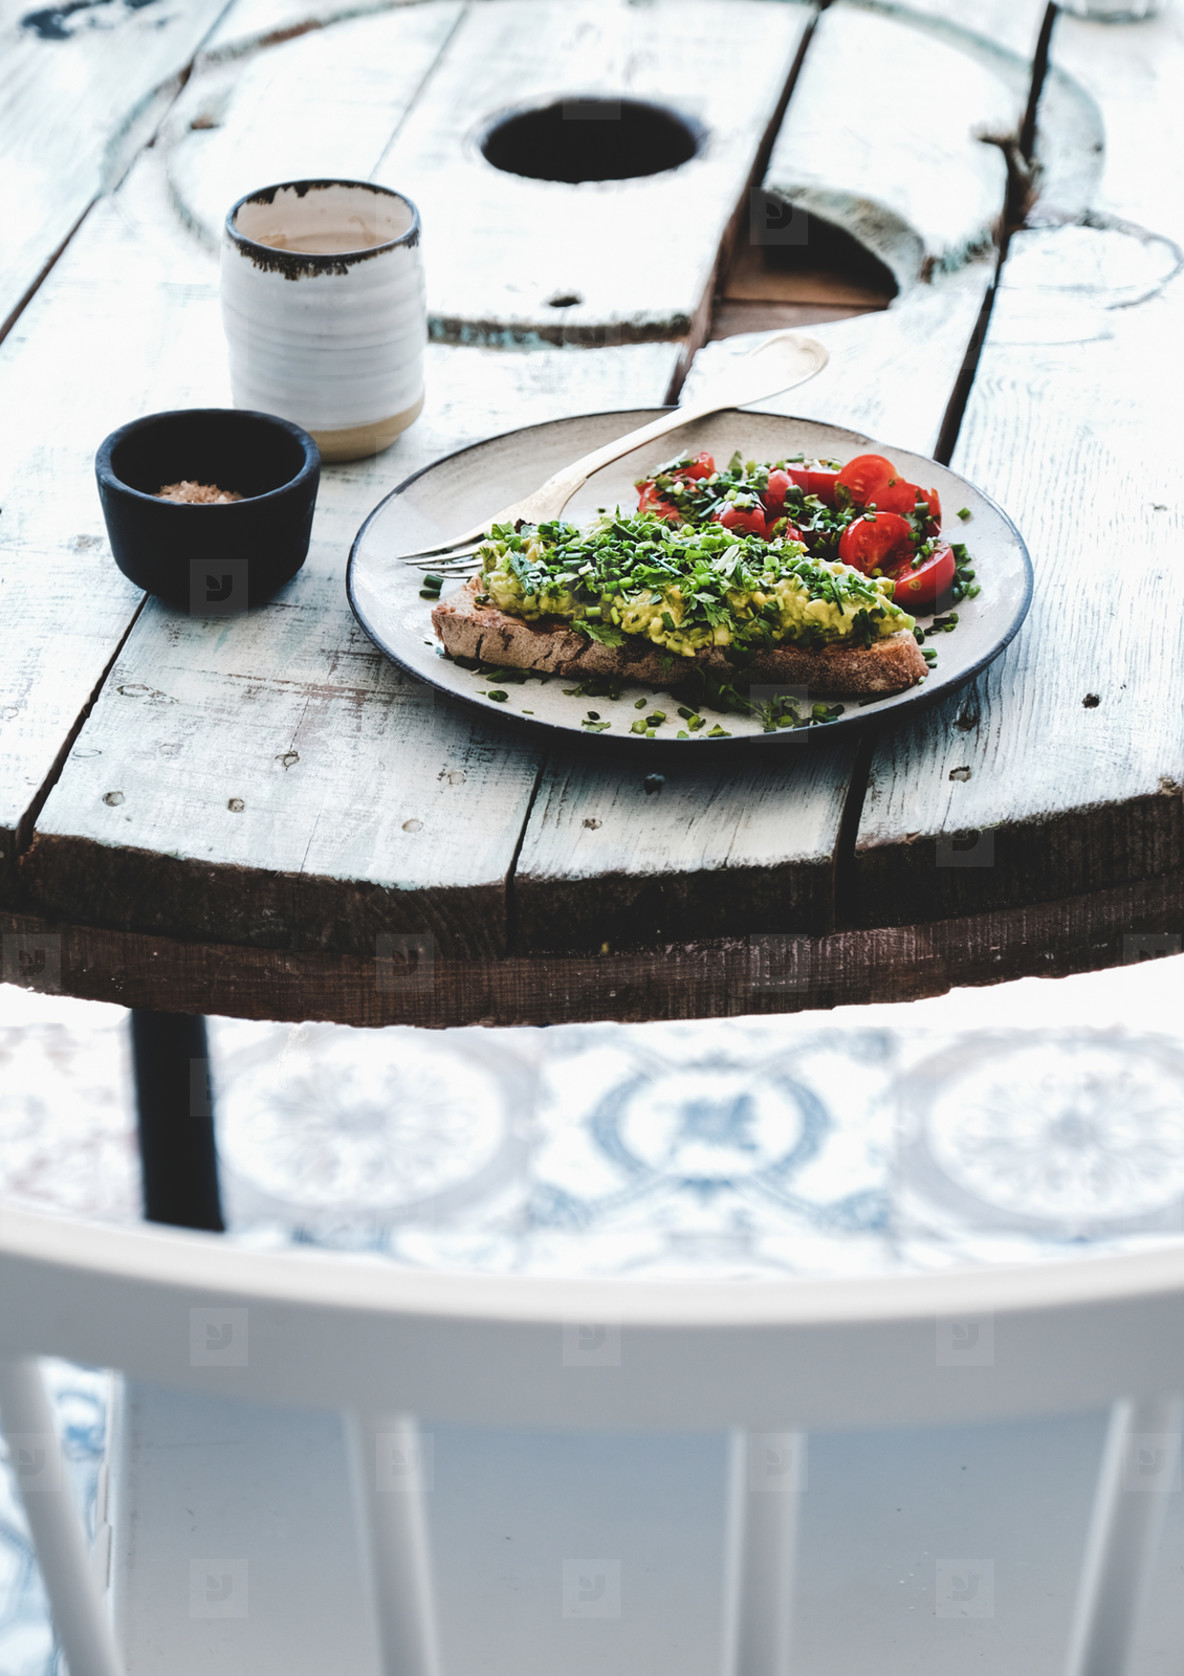 Healthy Vegan lunch with avocado toast and coffee on table